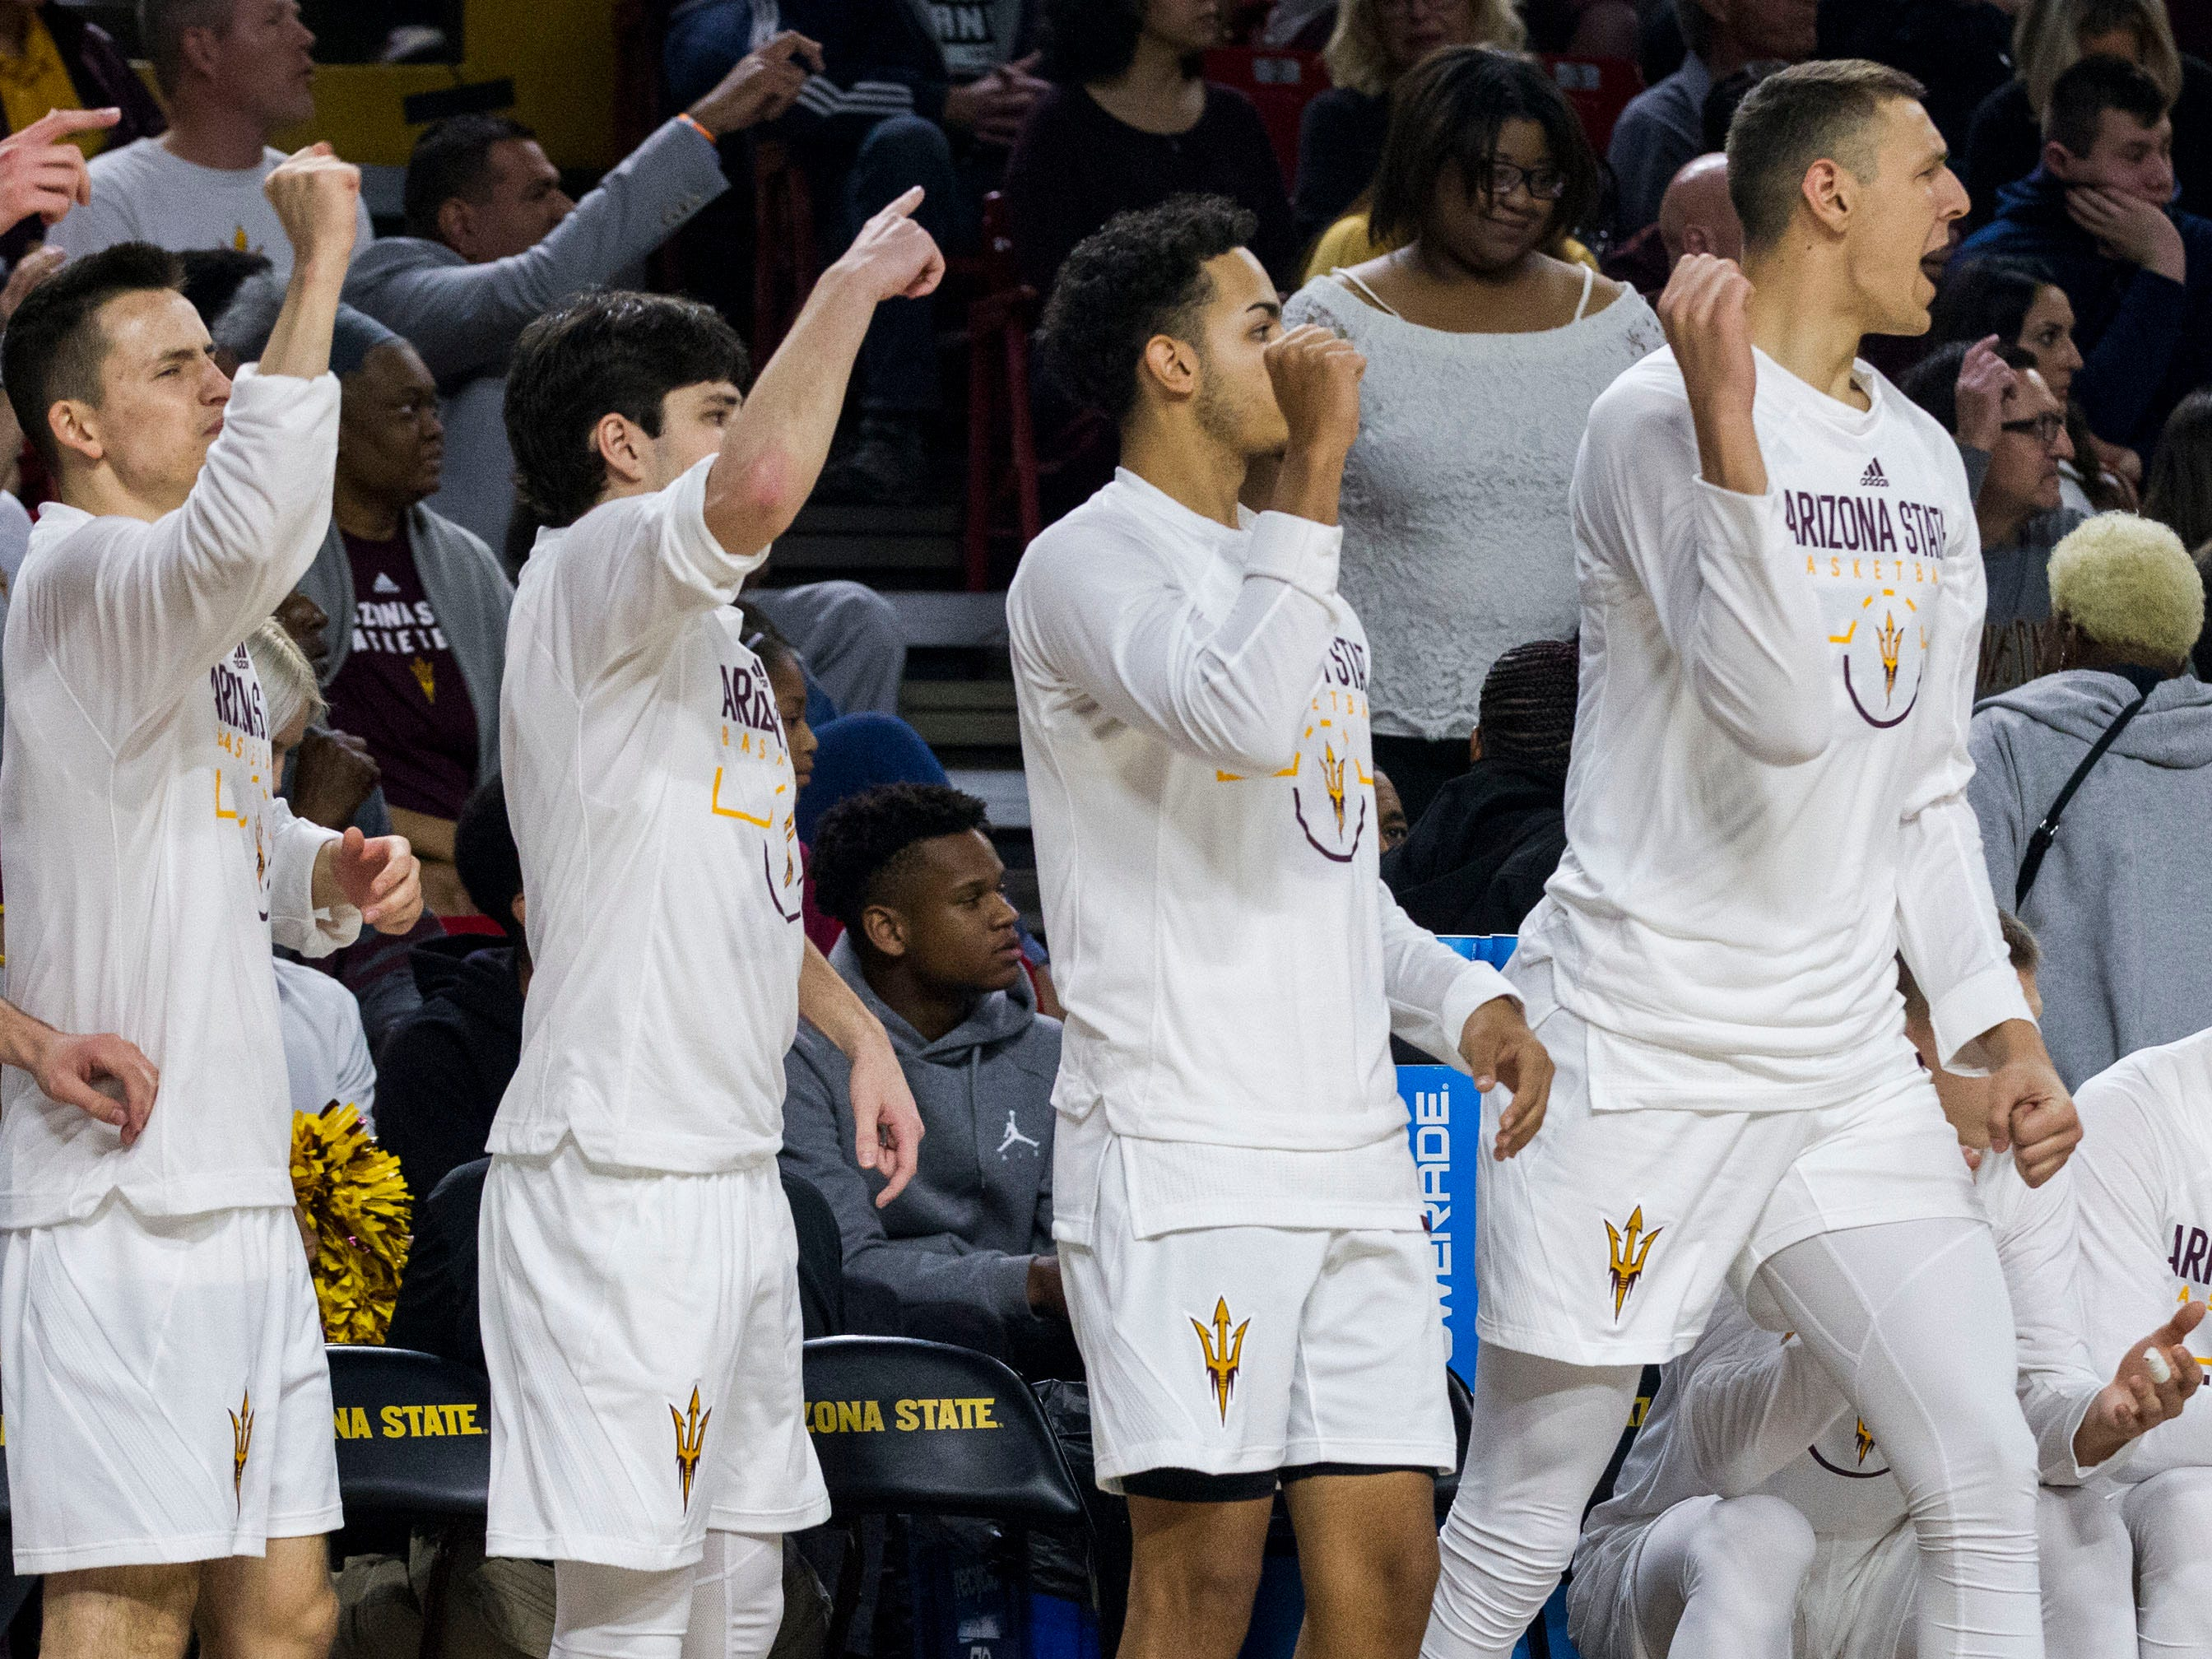 Arizona State players on the bench cheer on their team during the first half against Oregon, Saturday, Jan. 19, 2019, in Tempe, Ariz. (AP Photo/Darryl Webb)